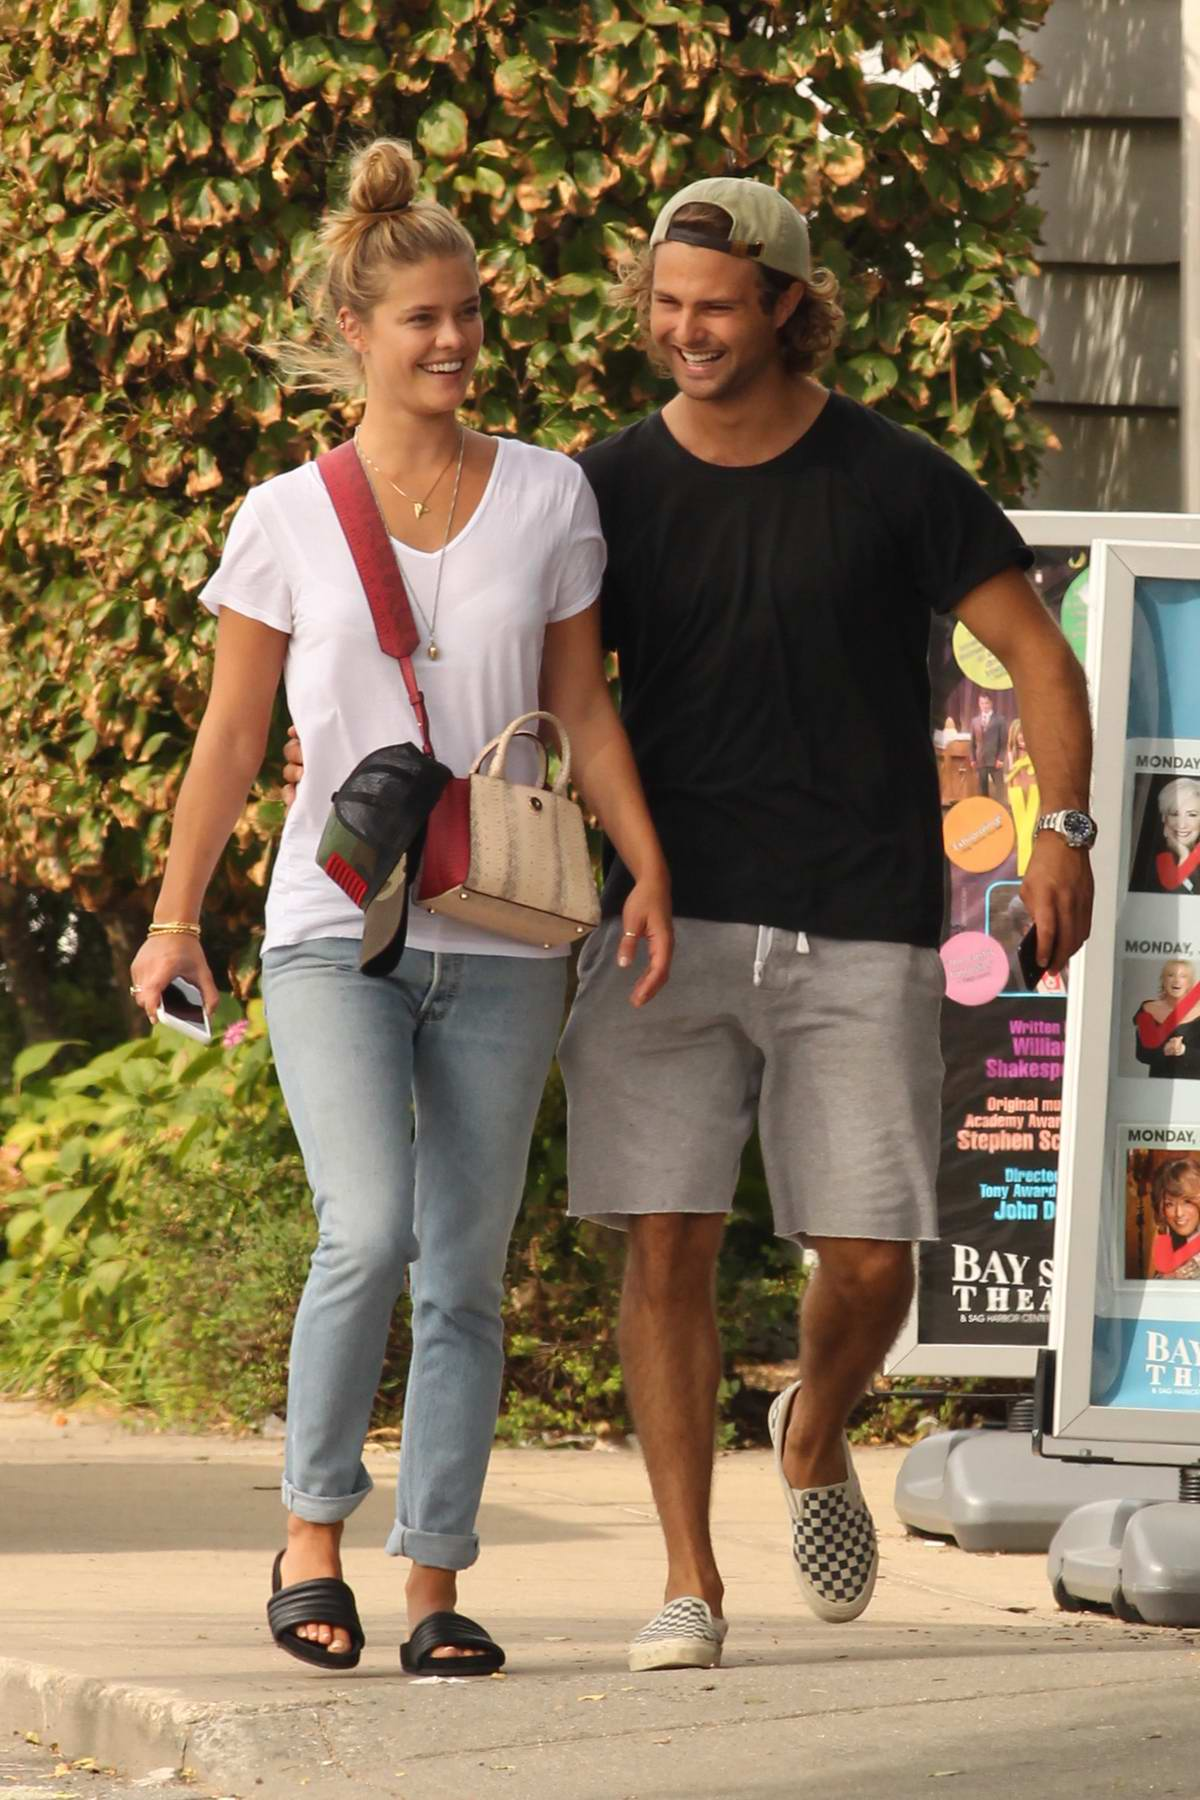 Nina Agdal and Jack Brinkley spotted together in Hamptons, New York